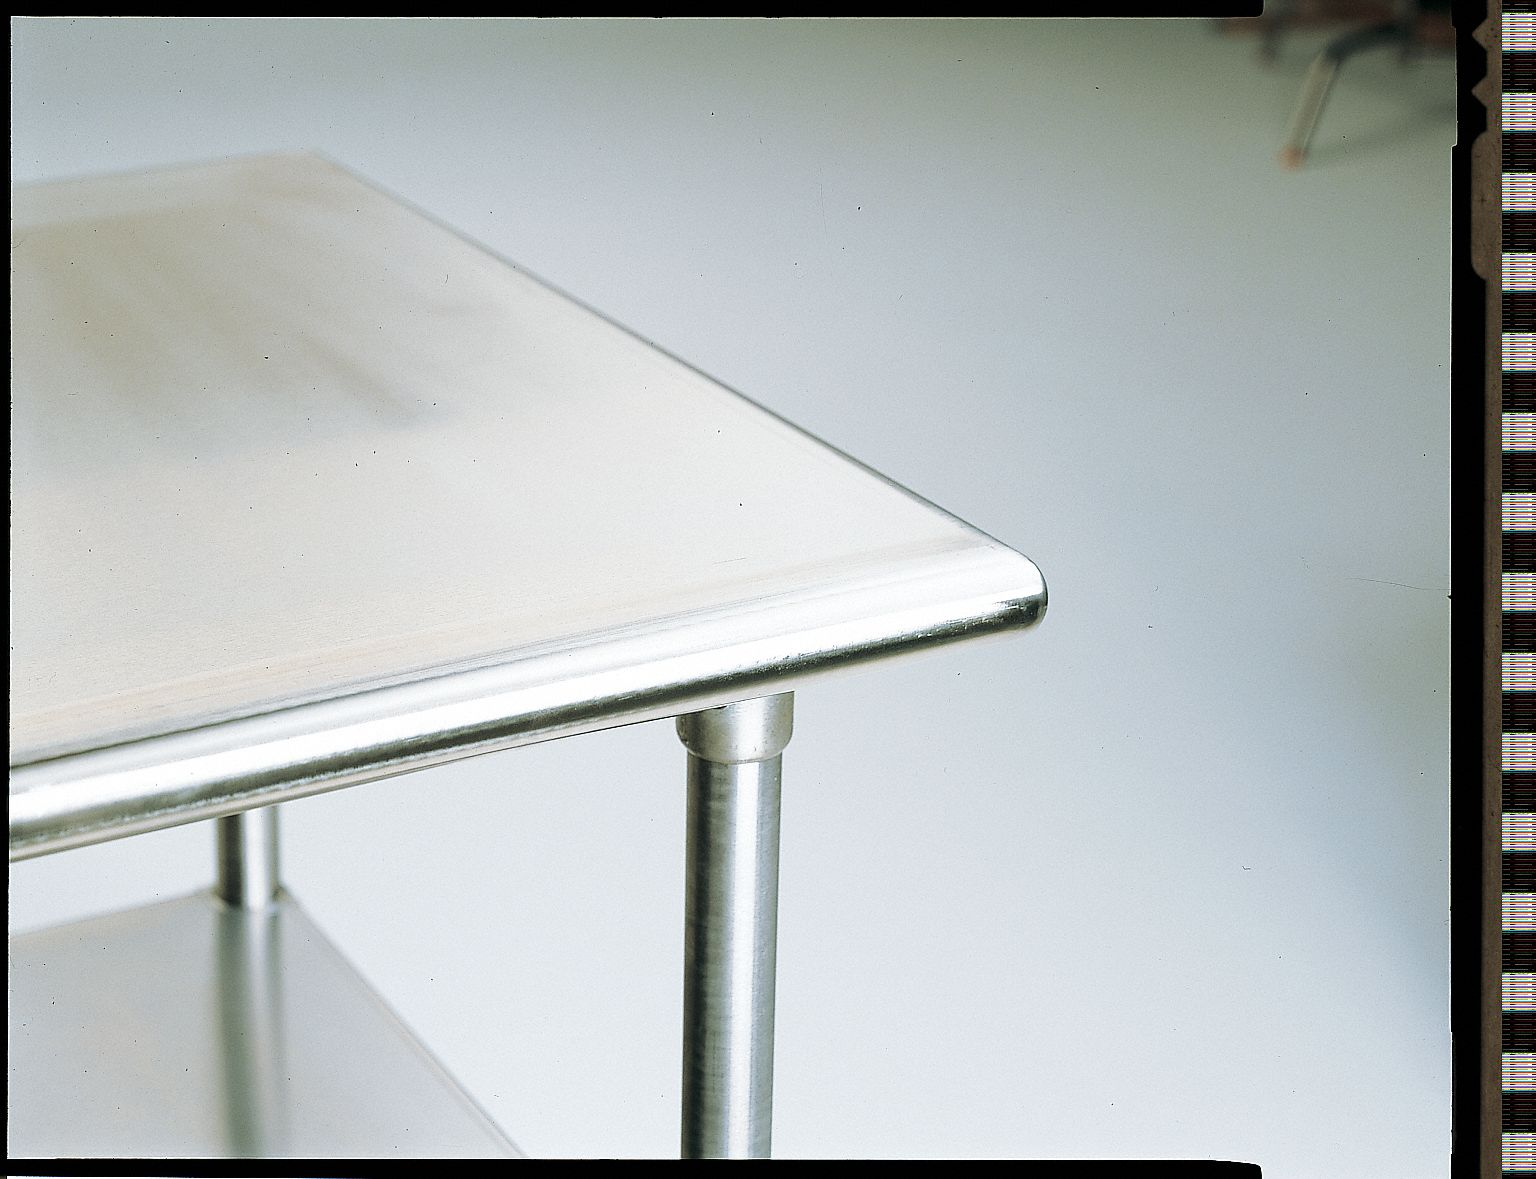 Fixed Height Work Table, Stainless Steel, 30 in Depth, 35 1/2 in Height, 48 in Width,500 lb Load Cap